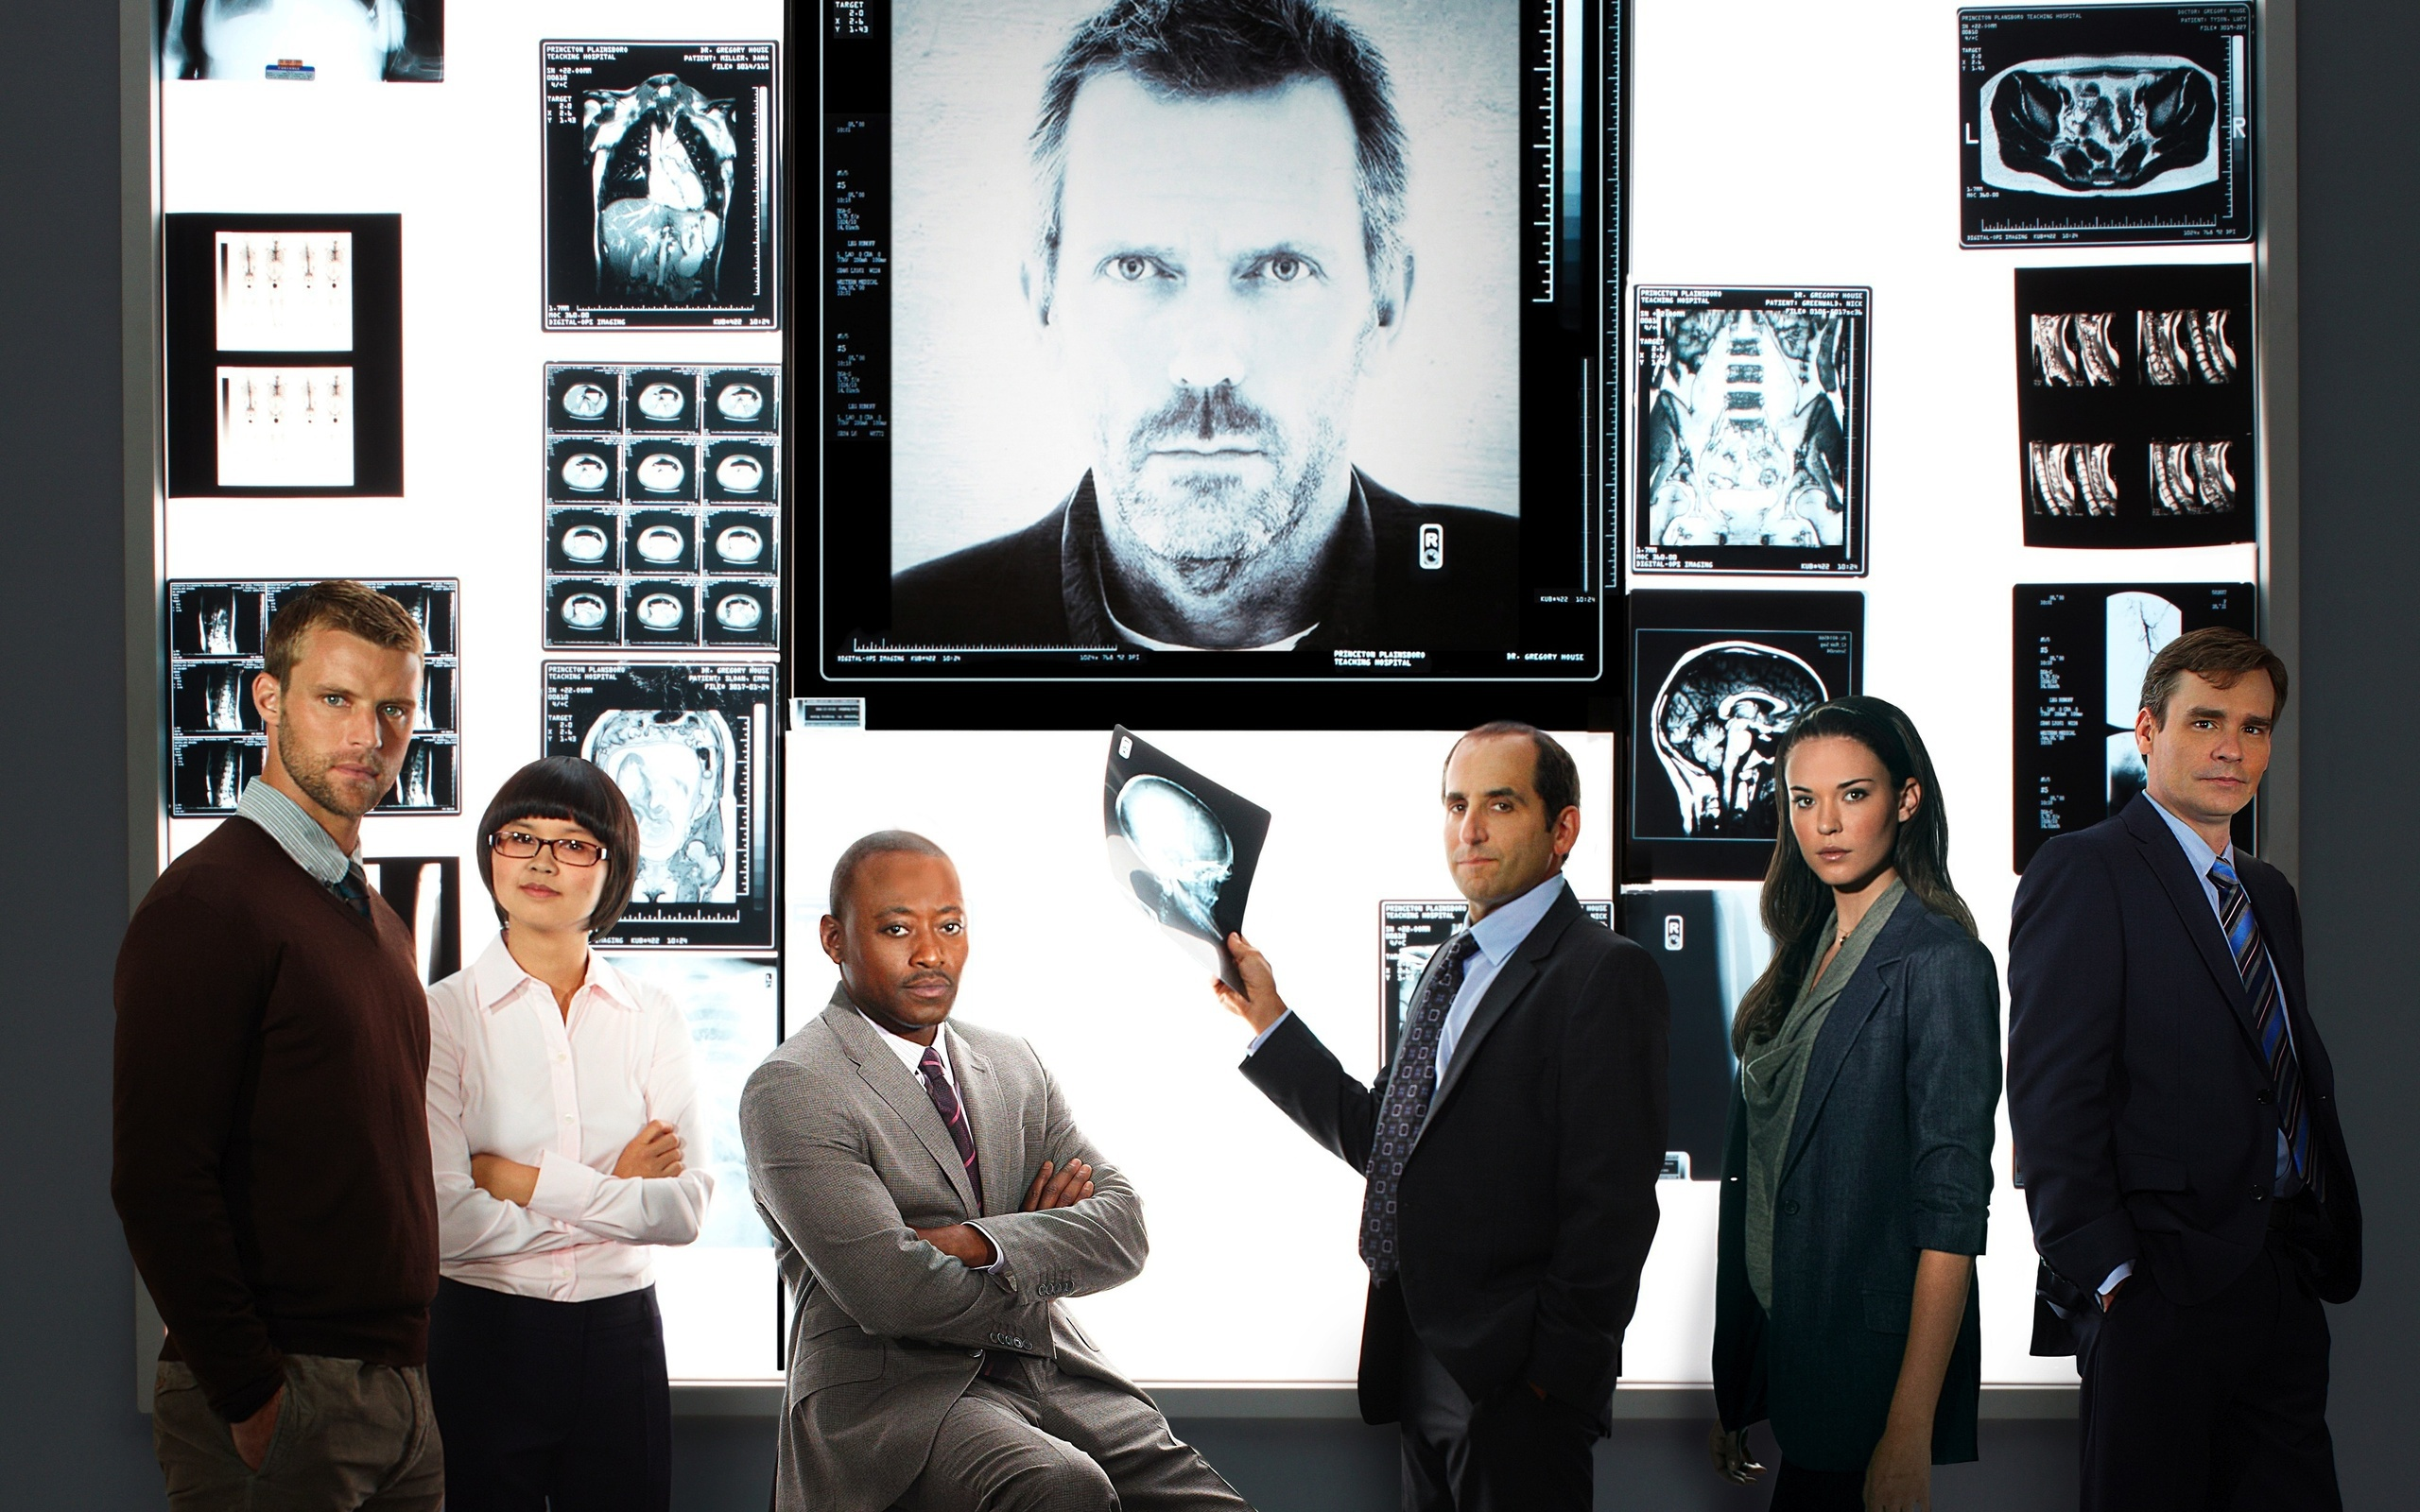 32662 download wallpaper Cinema, Actors, House M.d. screensavers and pictures for free